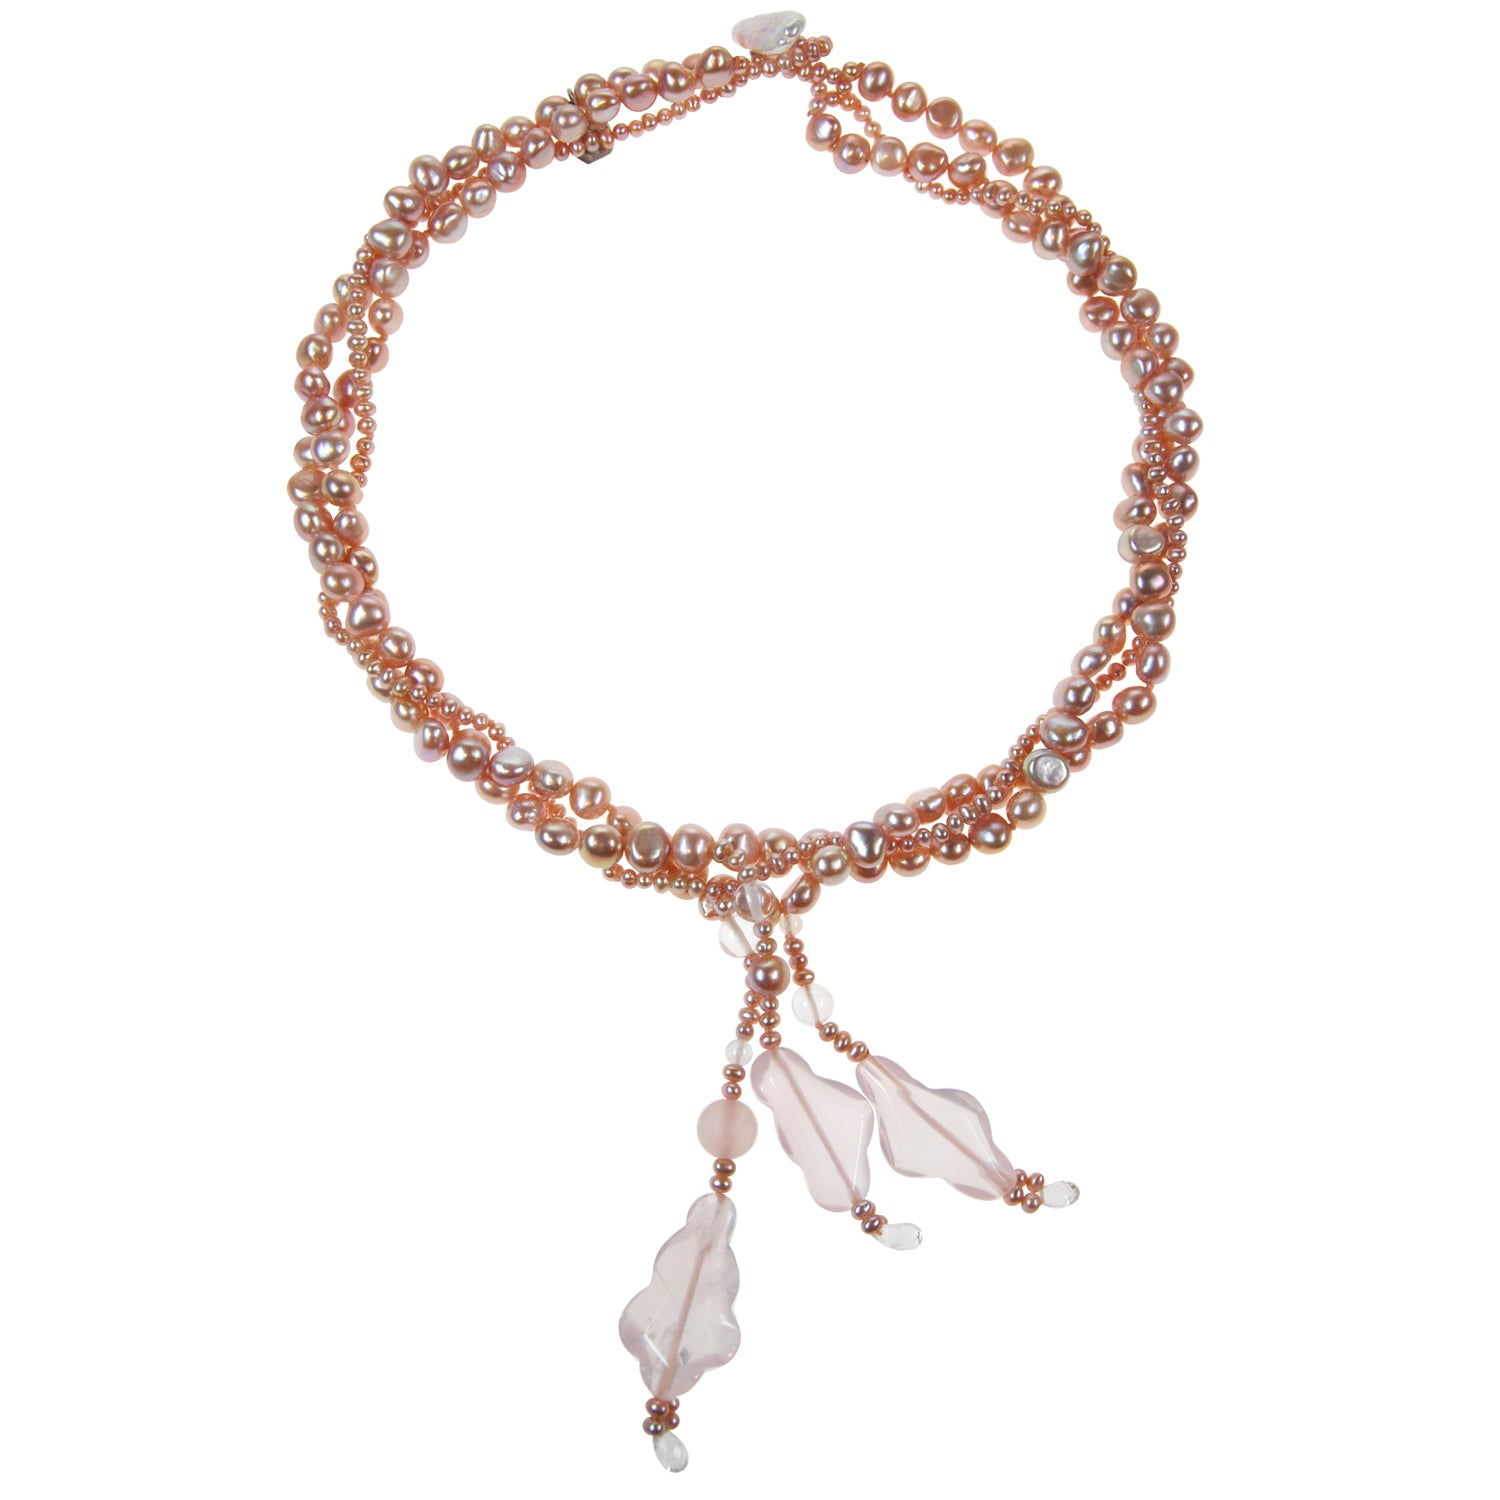 Triple Strand Pearl Necklace with Boulder Drop Tassel in Pink